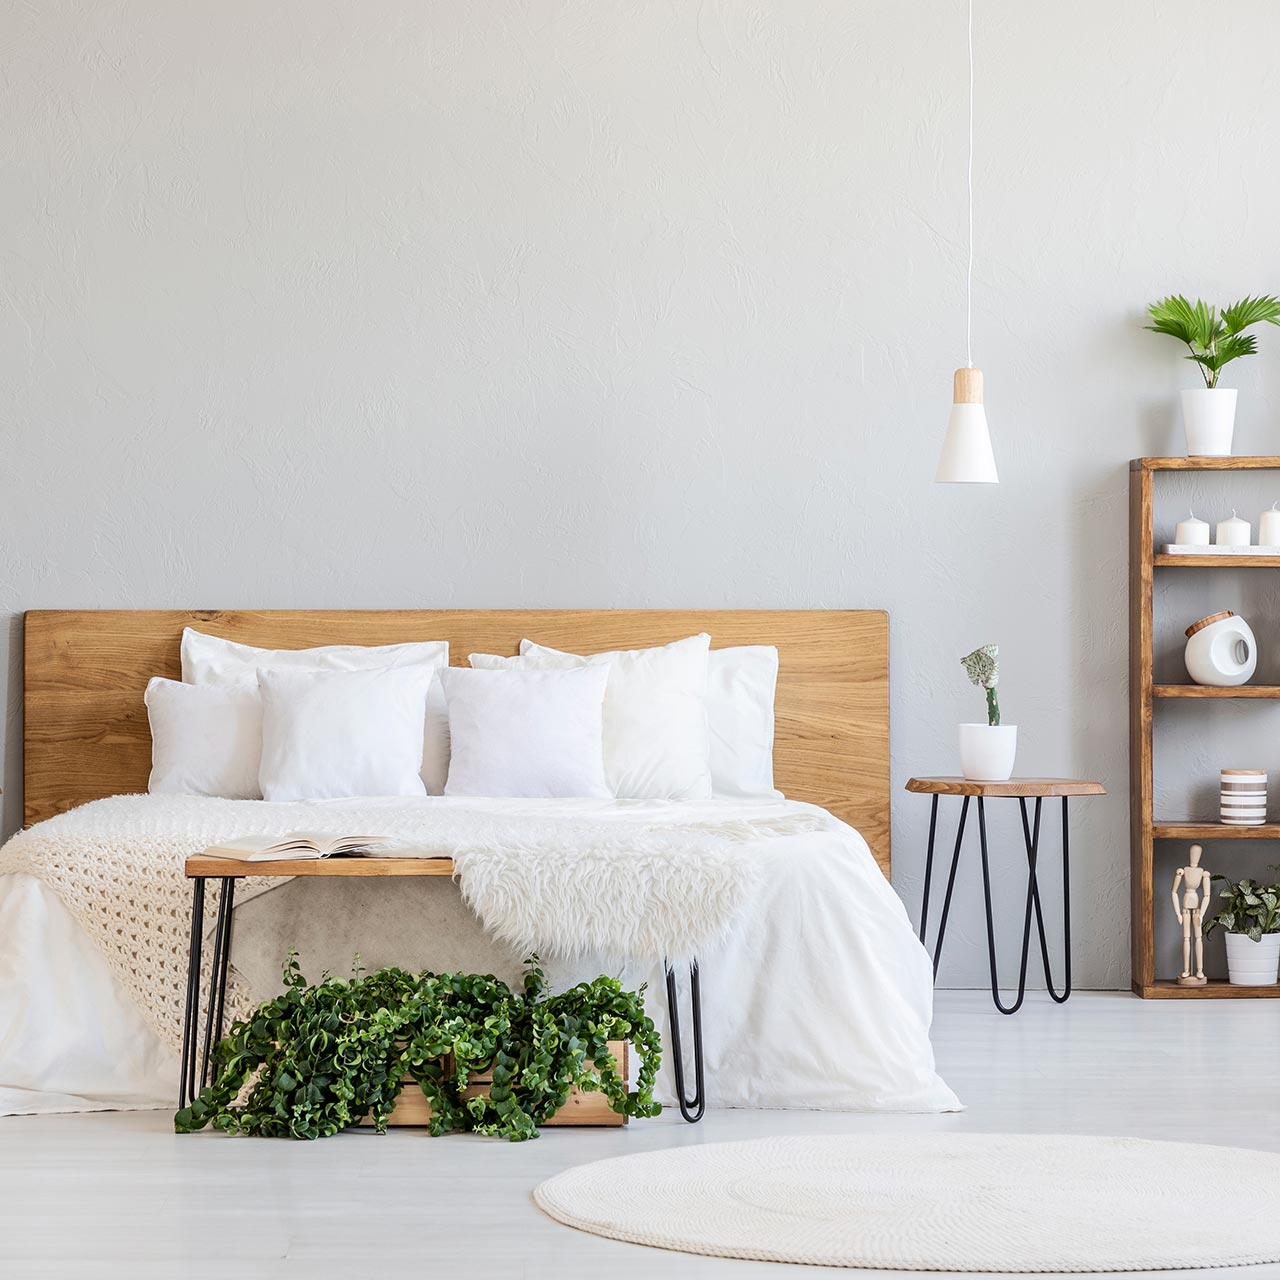 Scandinavian style bedroom designs are characterised by the minimal decor